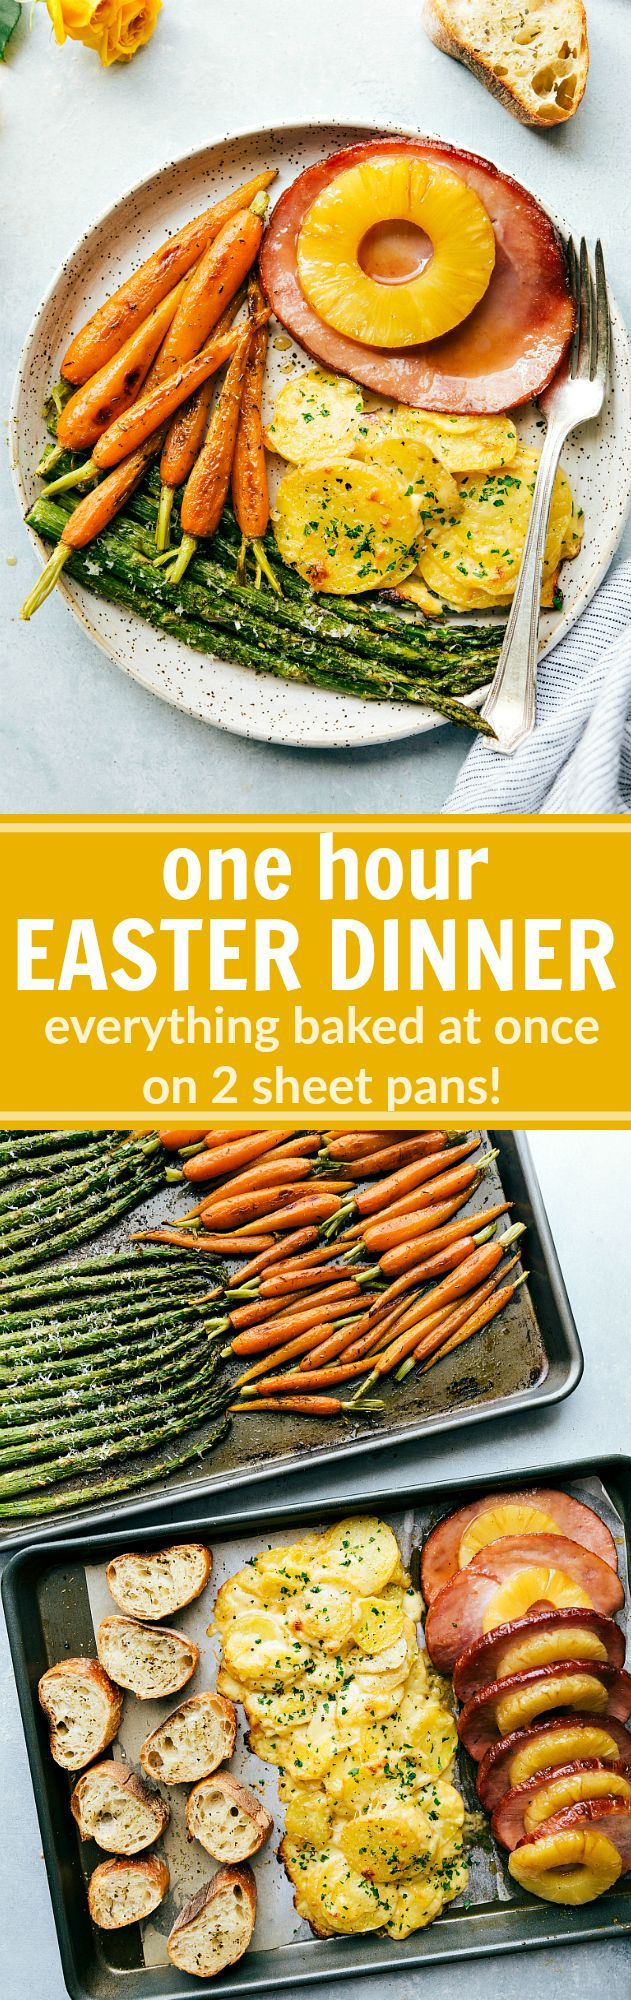 No Bake: One Hour Easter Dinner - Chelsea's Messy Apron